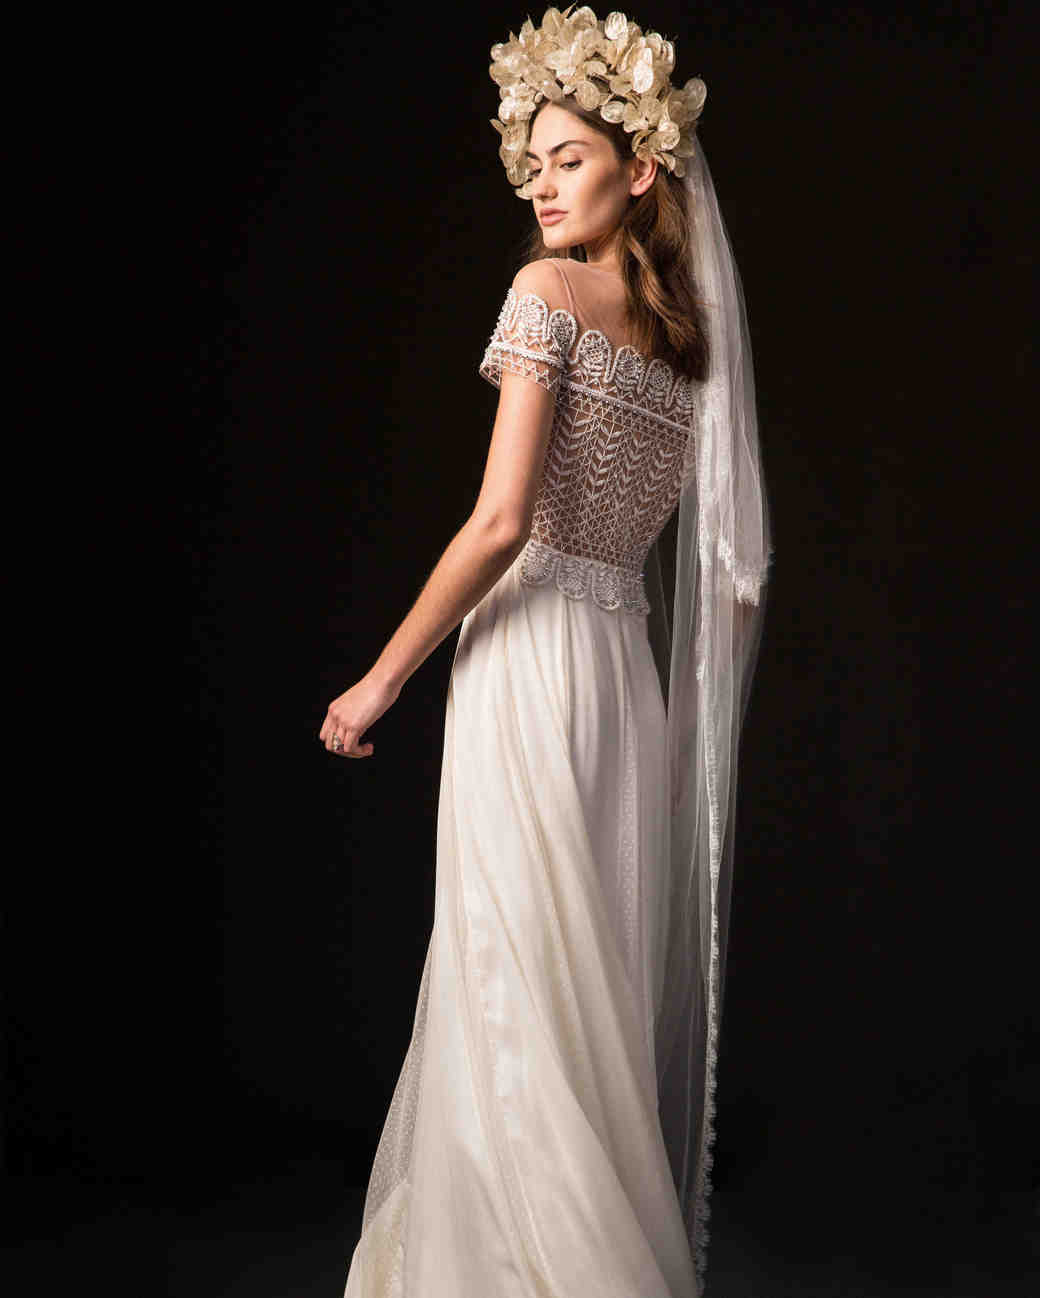 temperley fall 2019 spaghetti strap over the shoulder sheath wedding dress